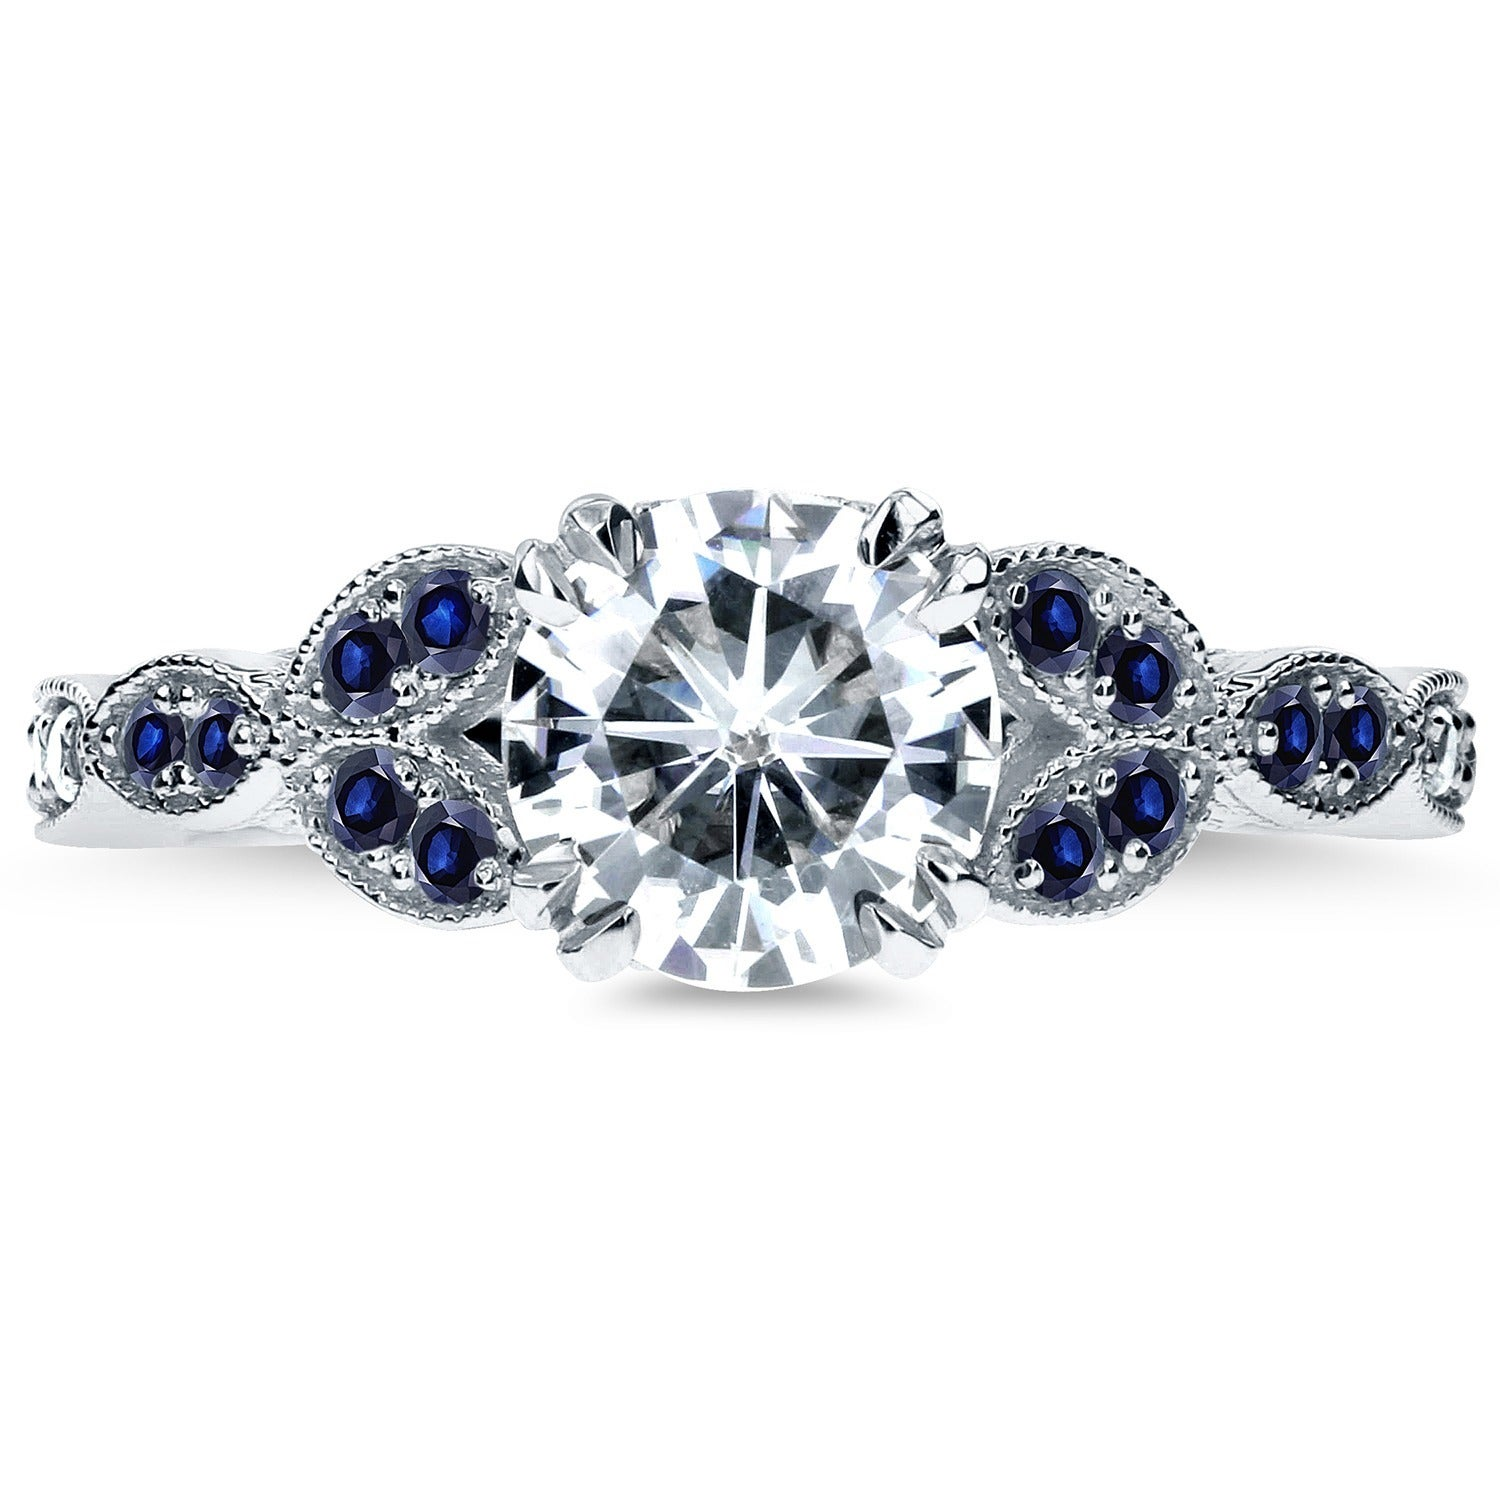 mcfarland moissanite ring ethical using designs jewelry stone stones fair and sapphire trade three